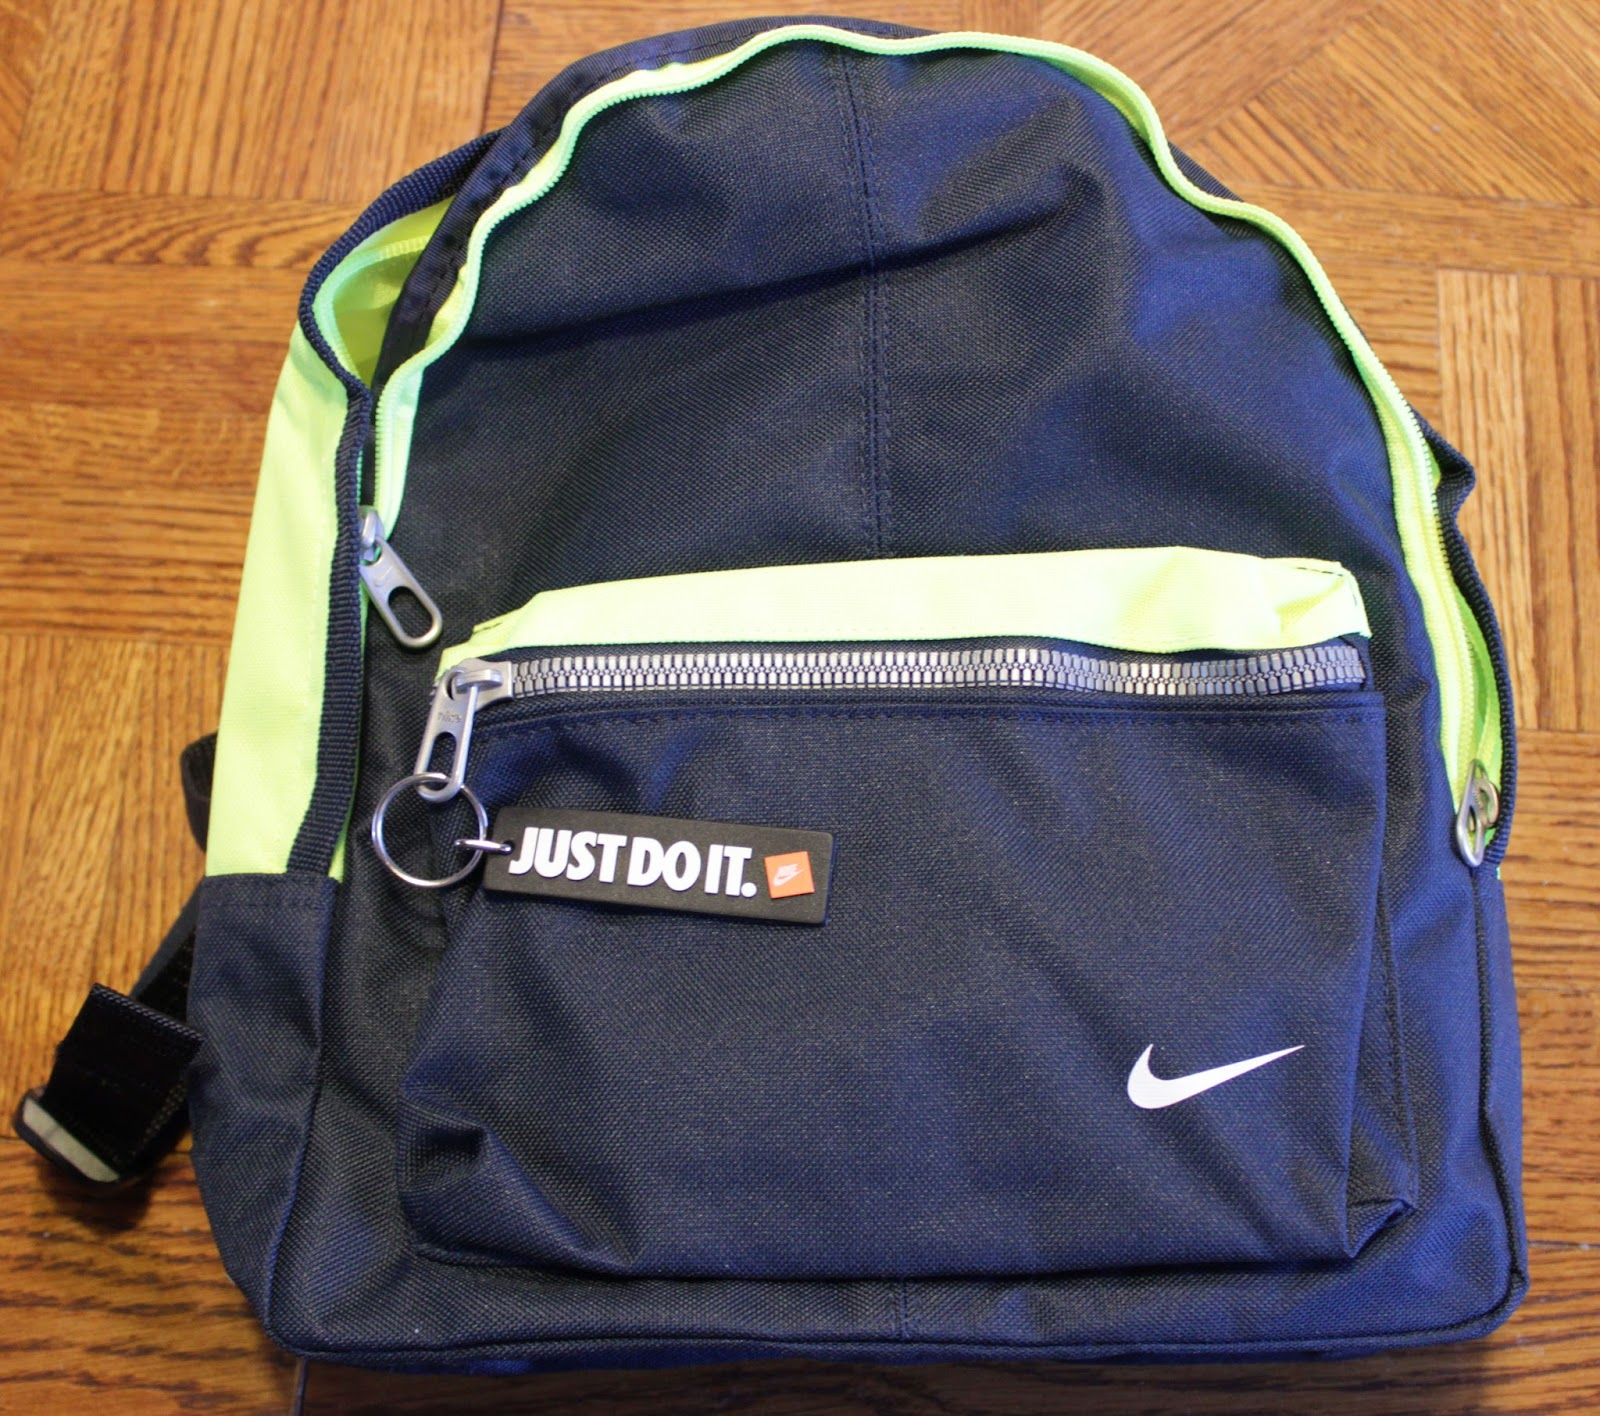 Nike Just Do it backpack, JD Sports